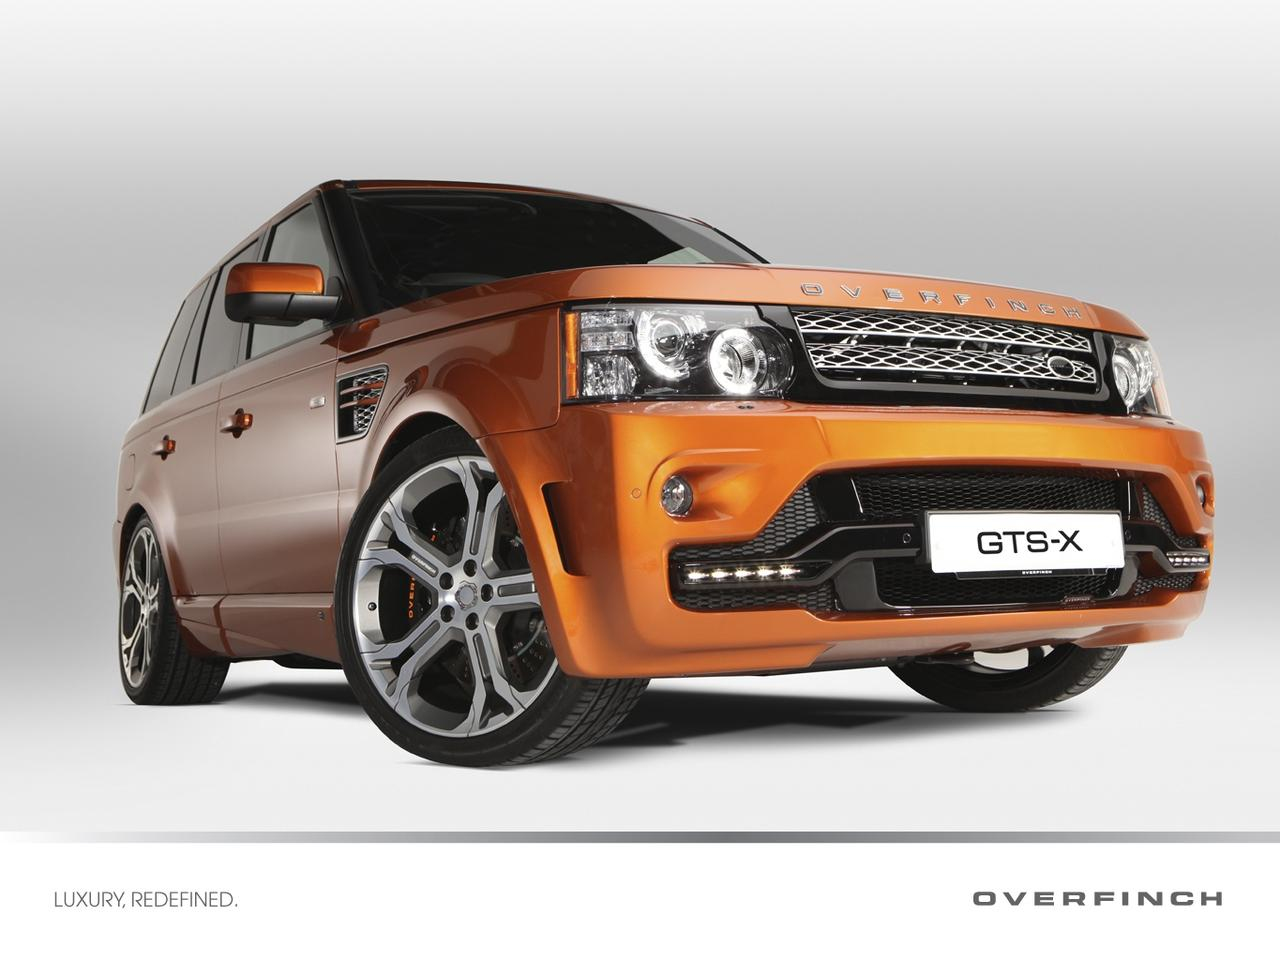 At 575-hp, the GTS-X is Overfinch's most powerful Range Rover Sport